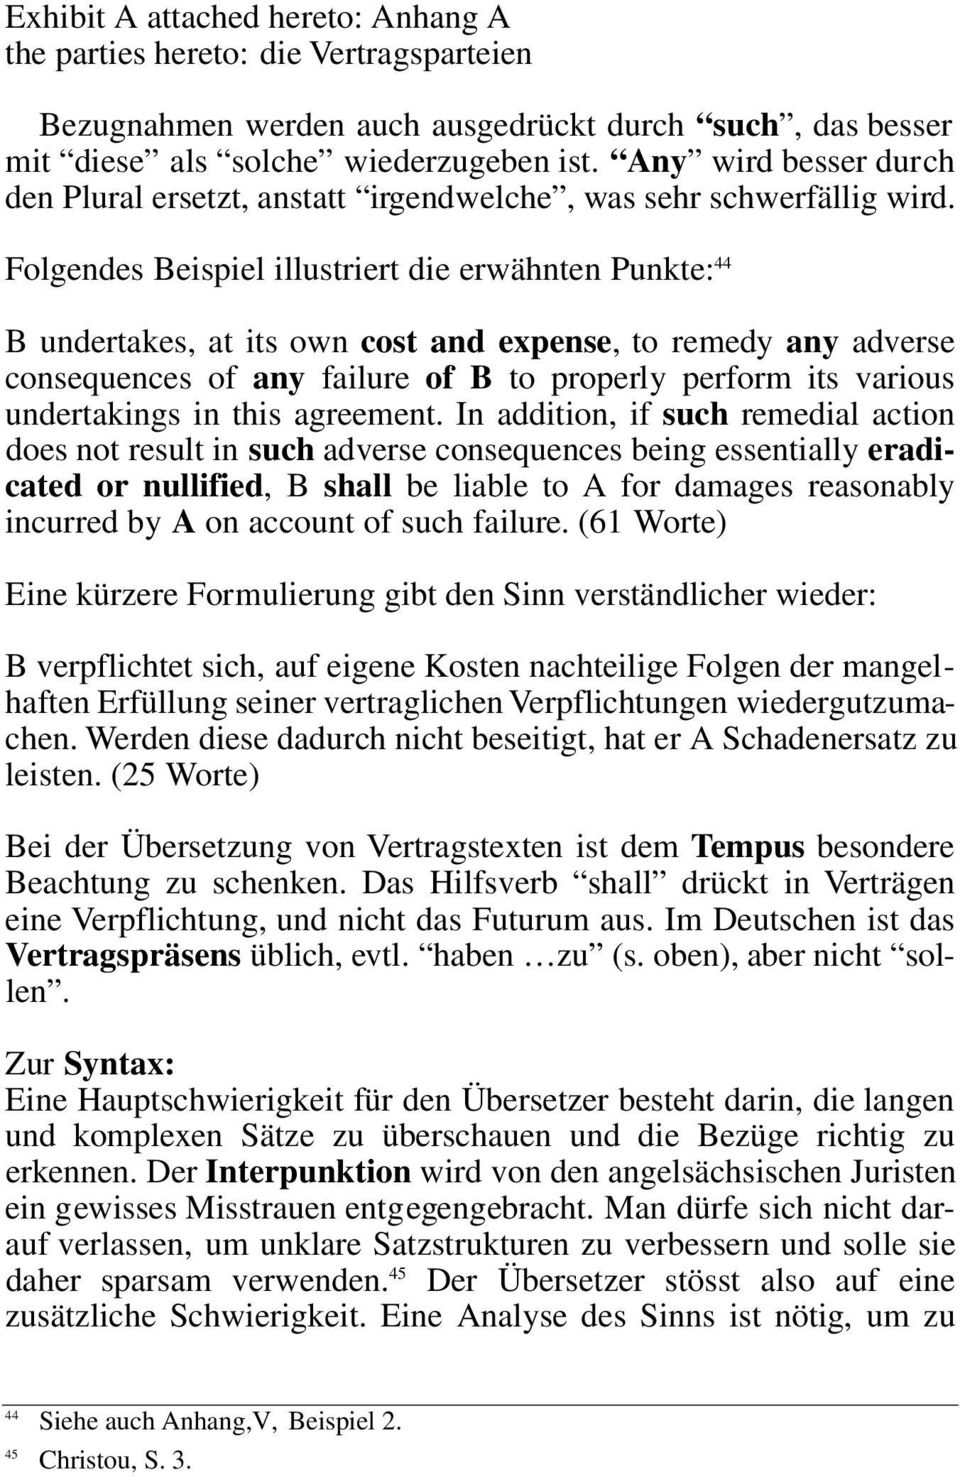 Folgendes Beispiel illustriert die erwähnten Punkte: 44 B undertakes, at its own cost and expense, to remedy any adverse consequences of any failure of B to properly perform its various undertakings